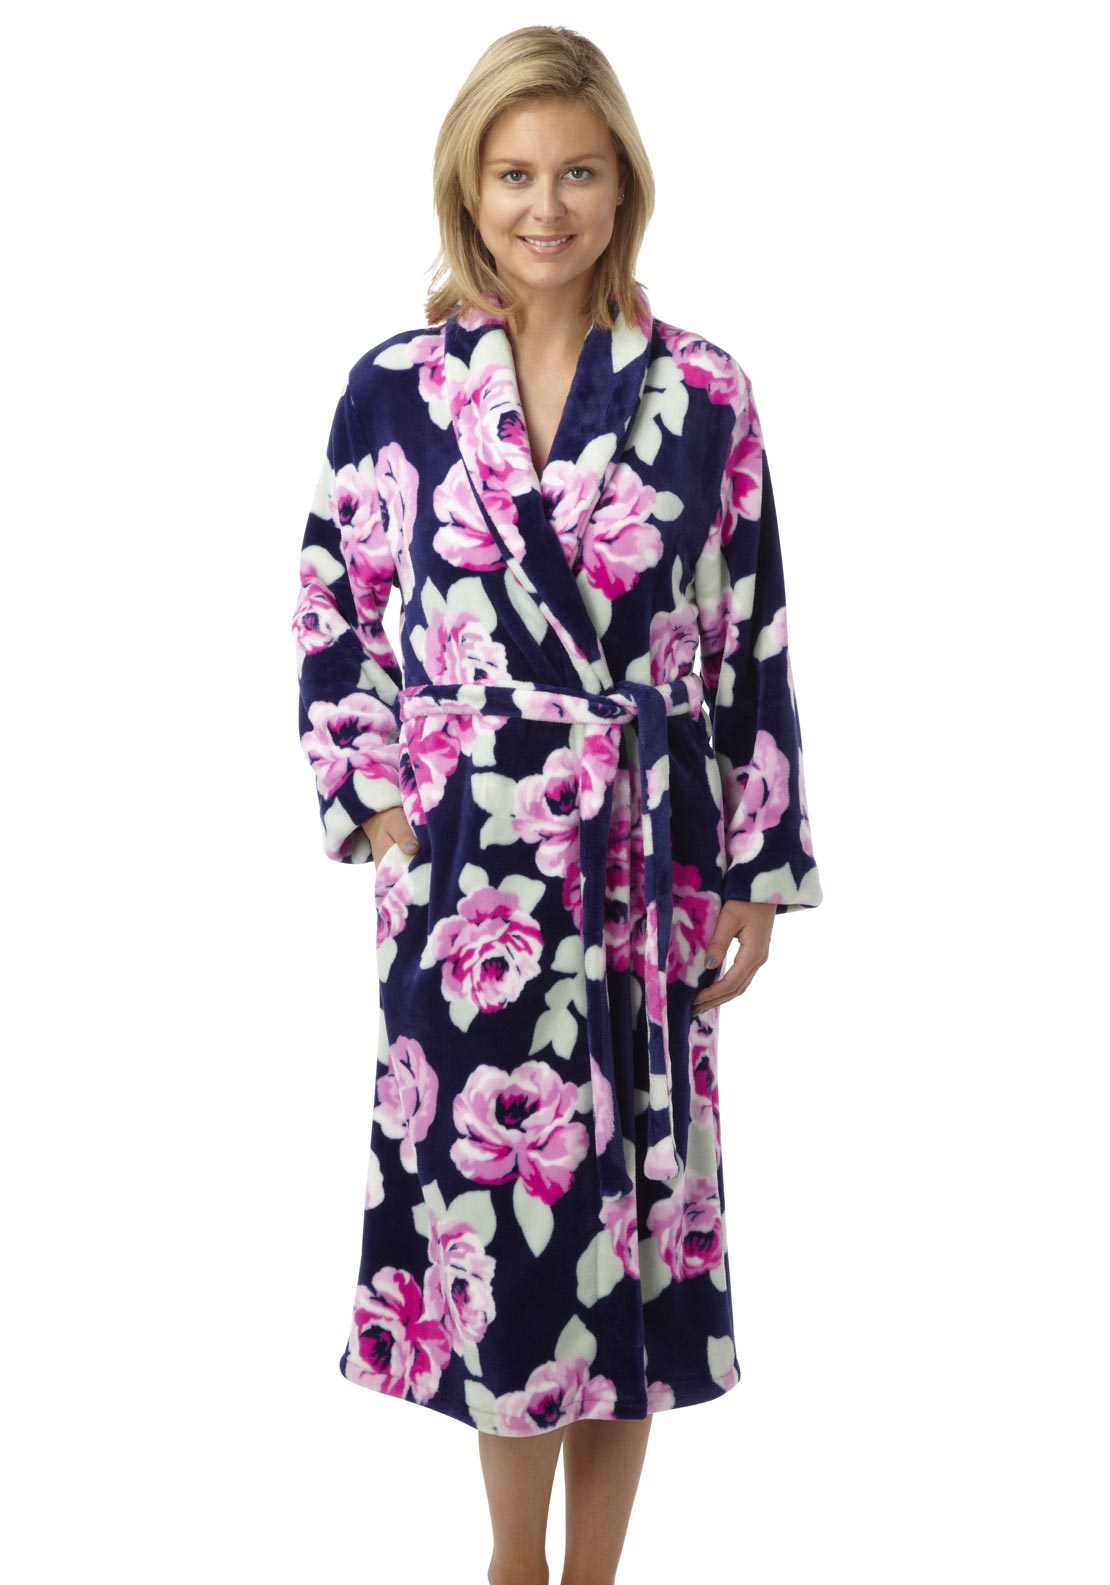 Indigo Sky Soft Fleece Floral Dressing Gown, Multi-Coloured